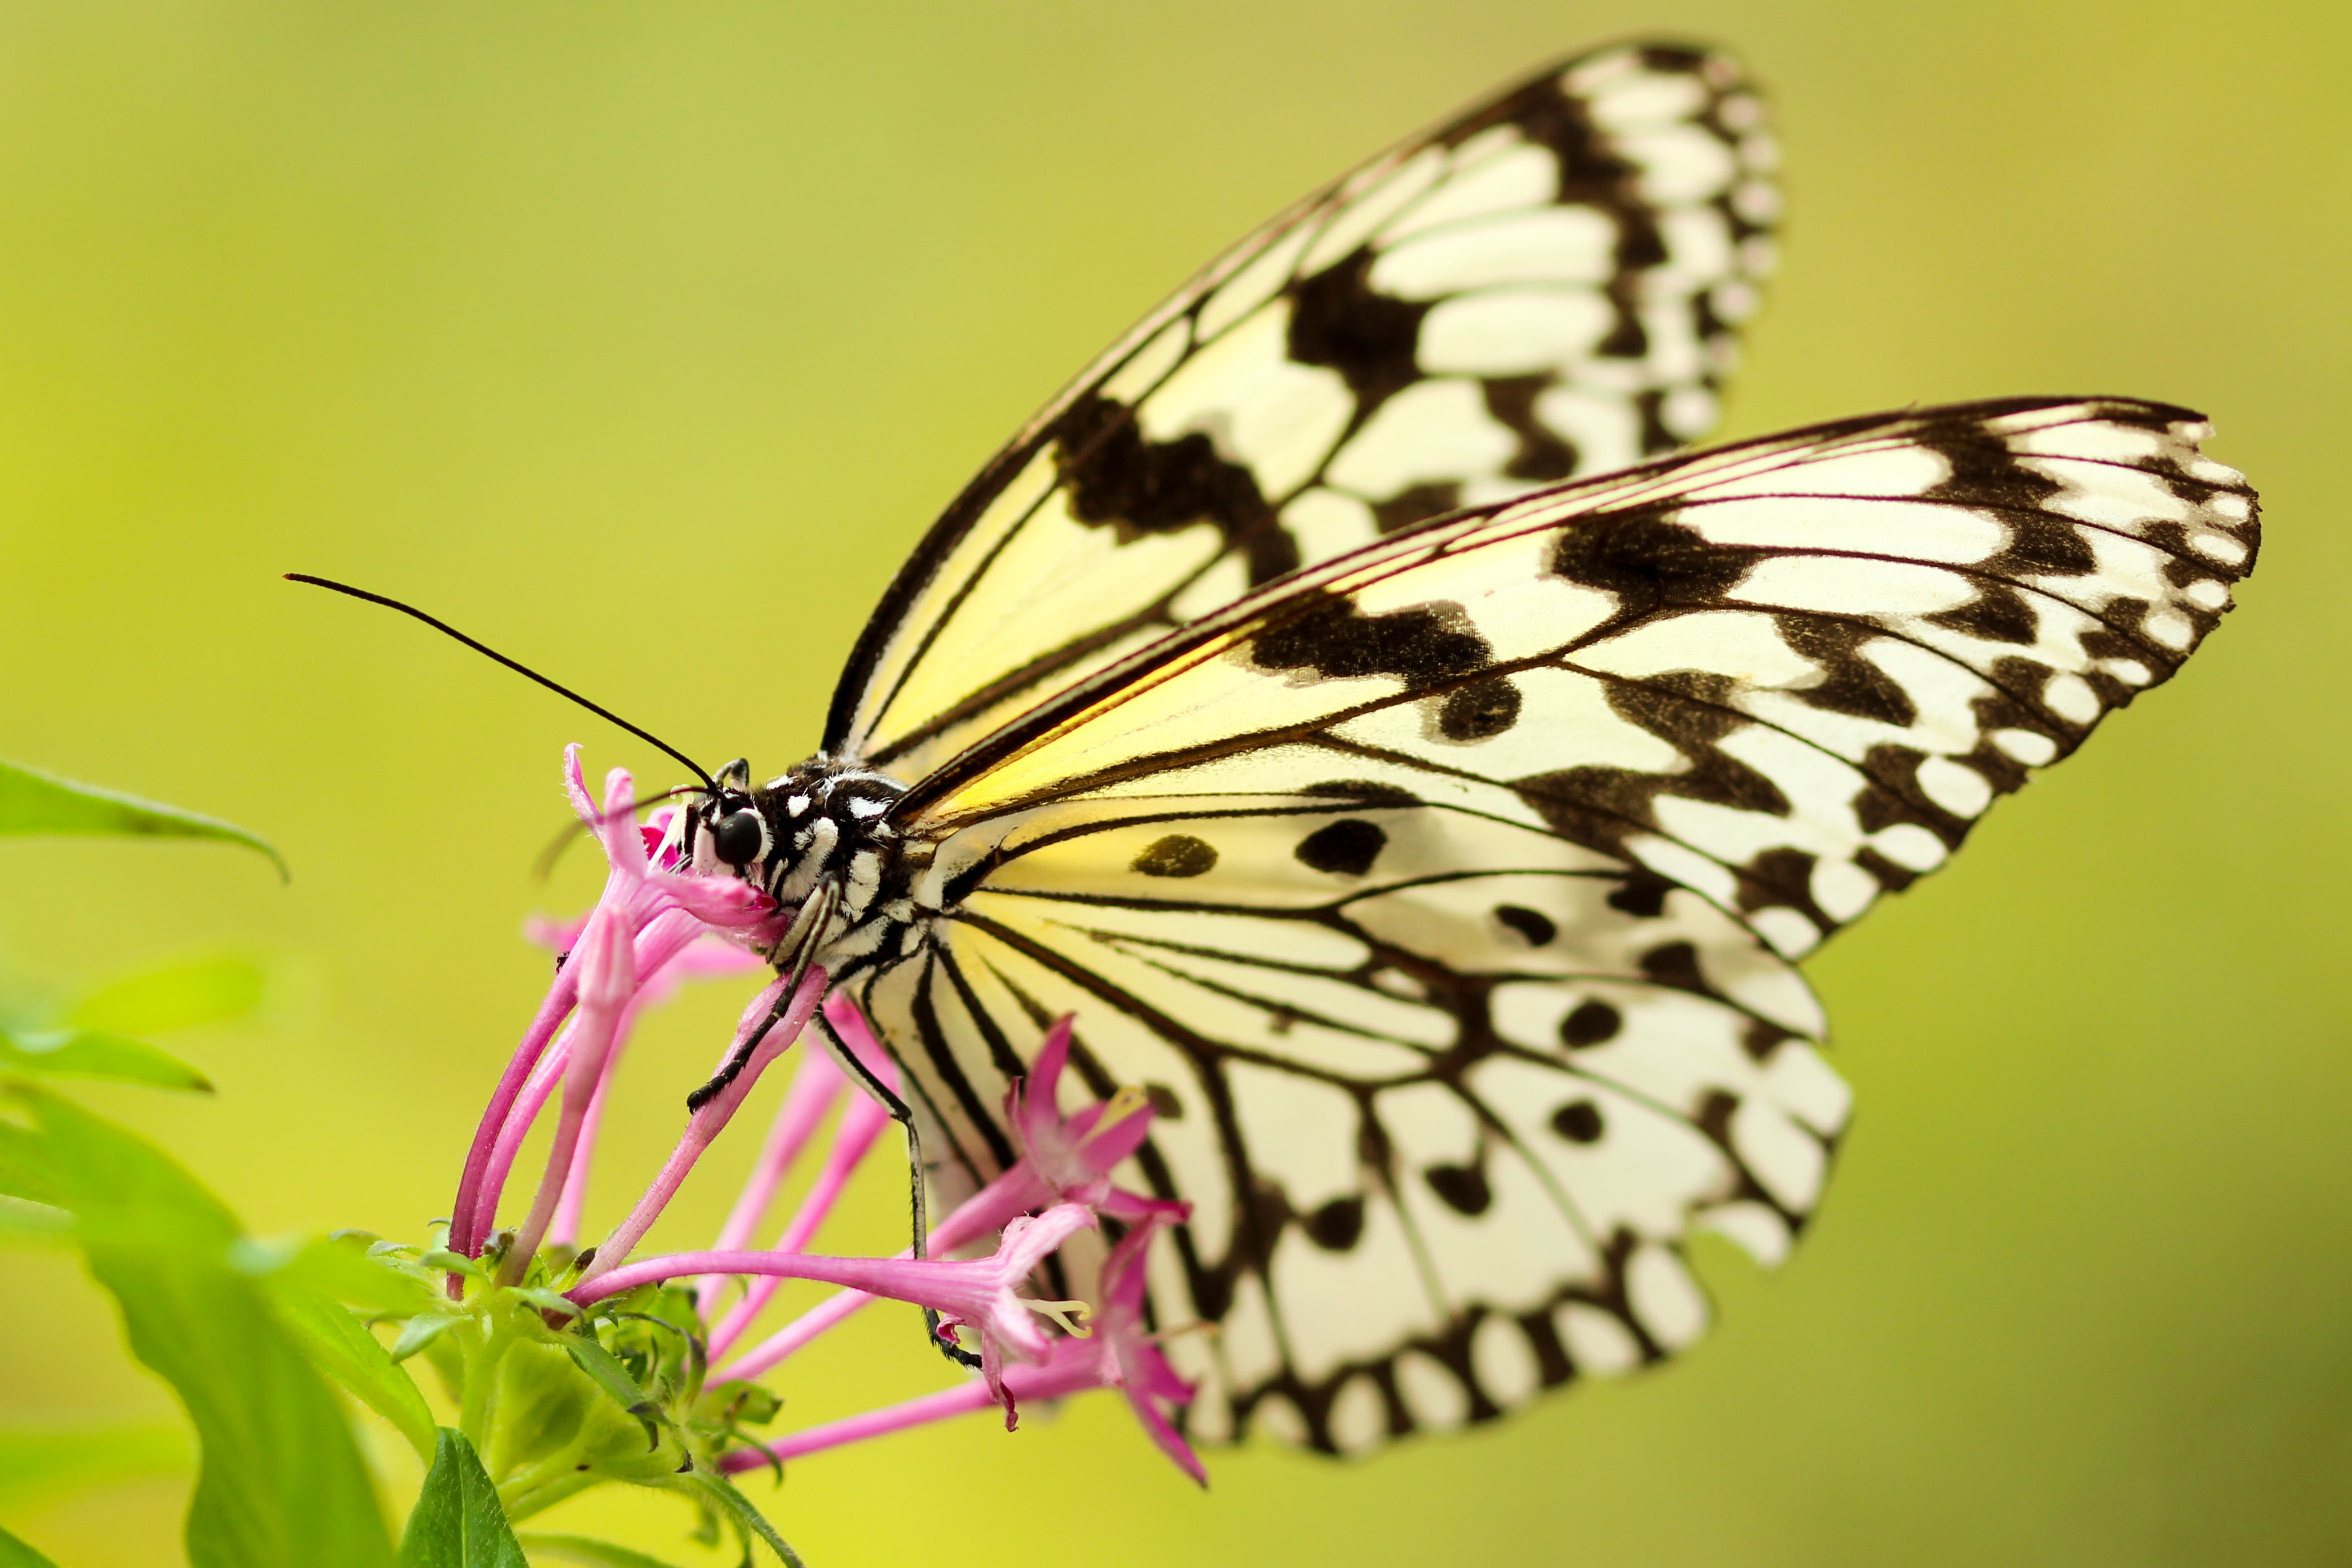 A white monarch butterfly feeding on pink flowers